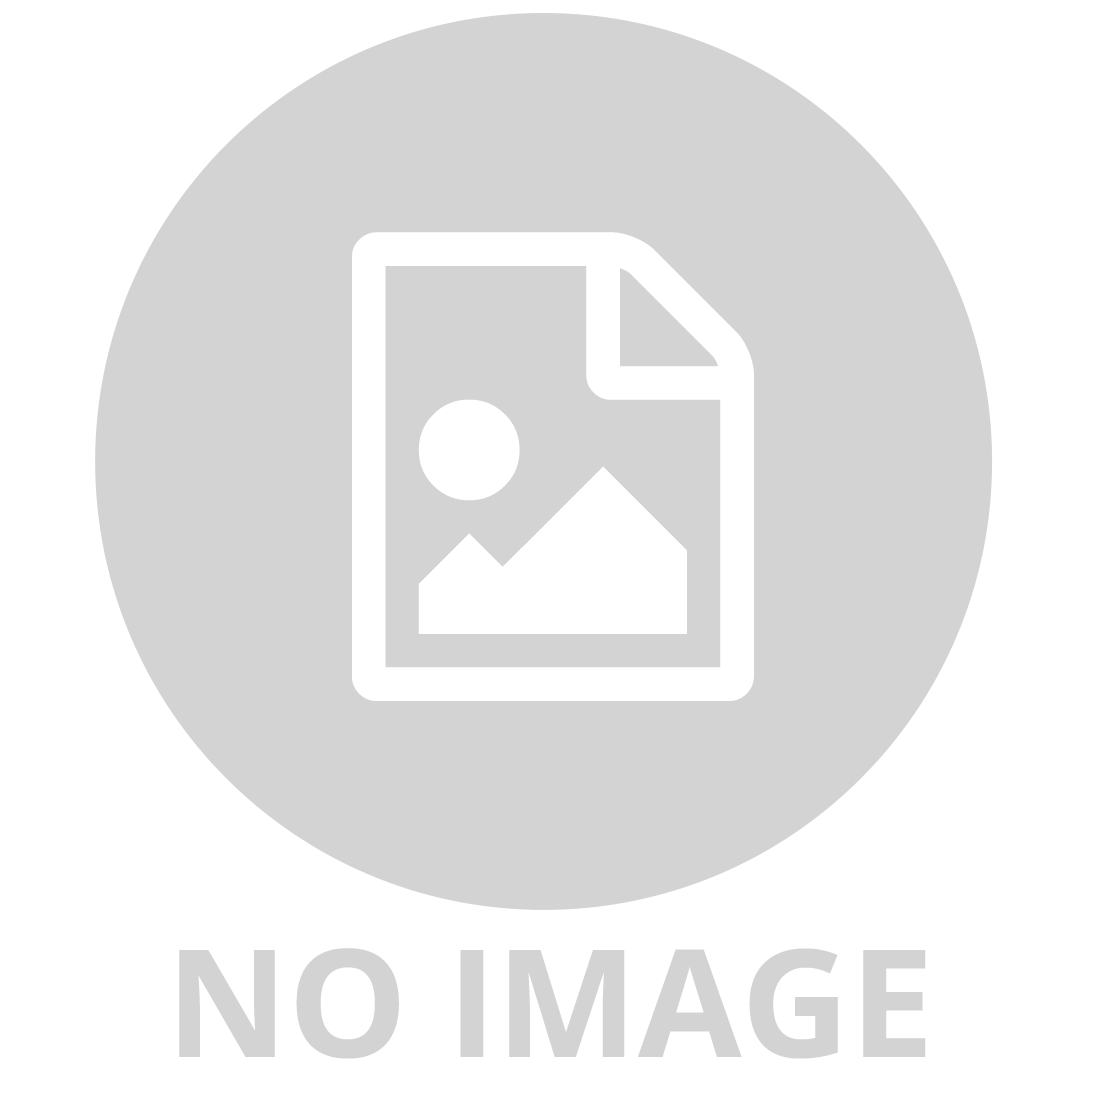 BRUDER 1:16 SCANIA R SERIES LIEBHERR CRANE TRUCK WITH LIGHT